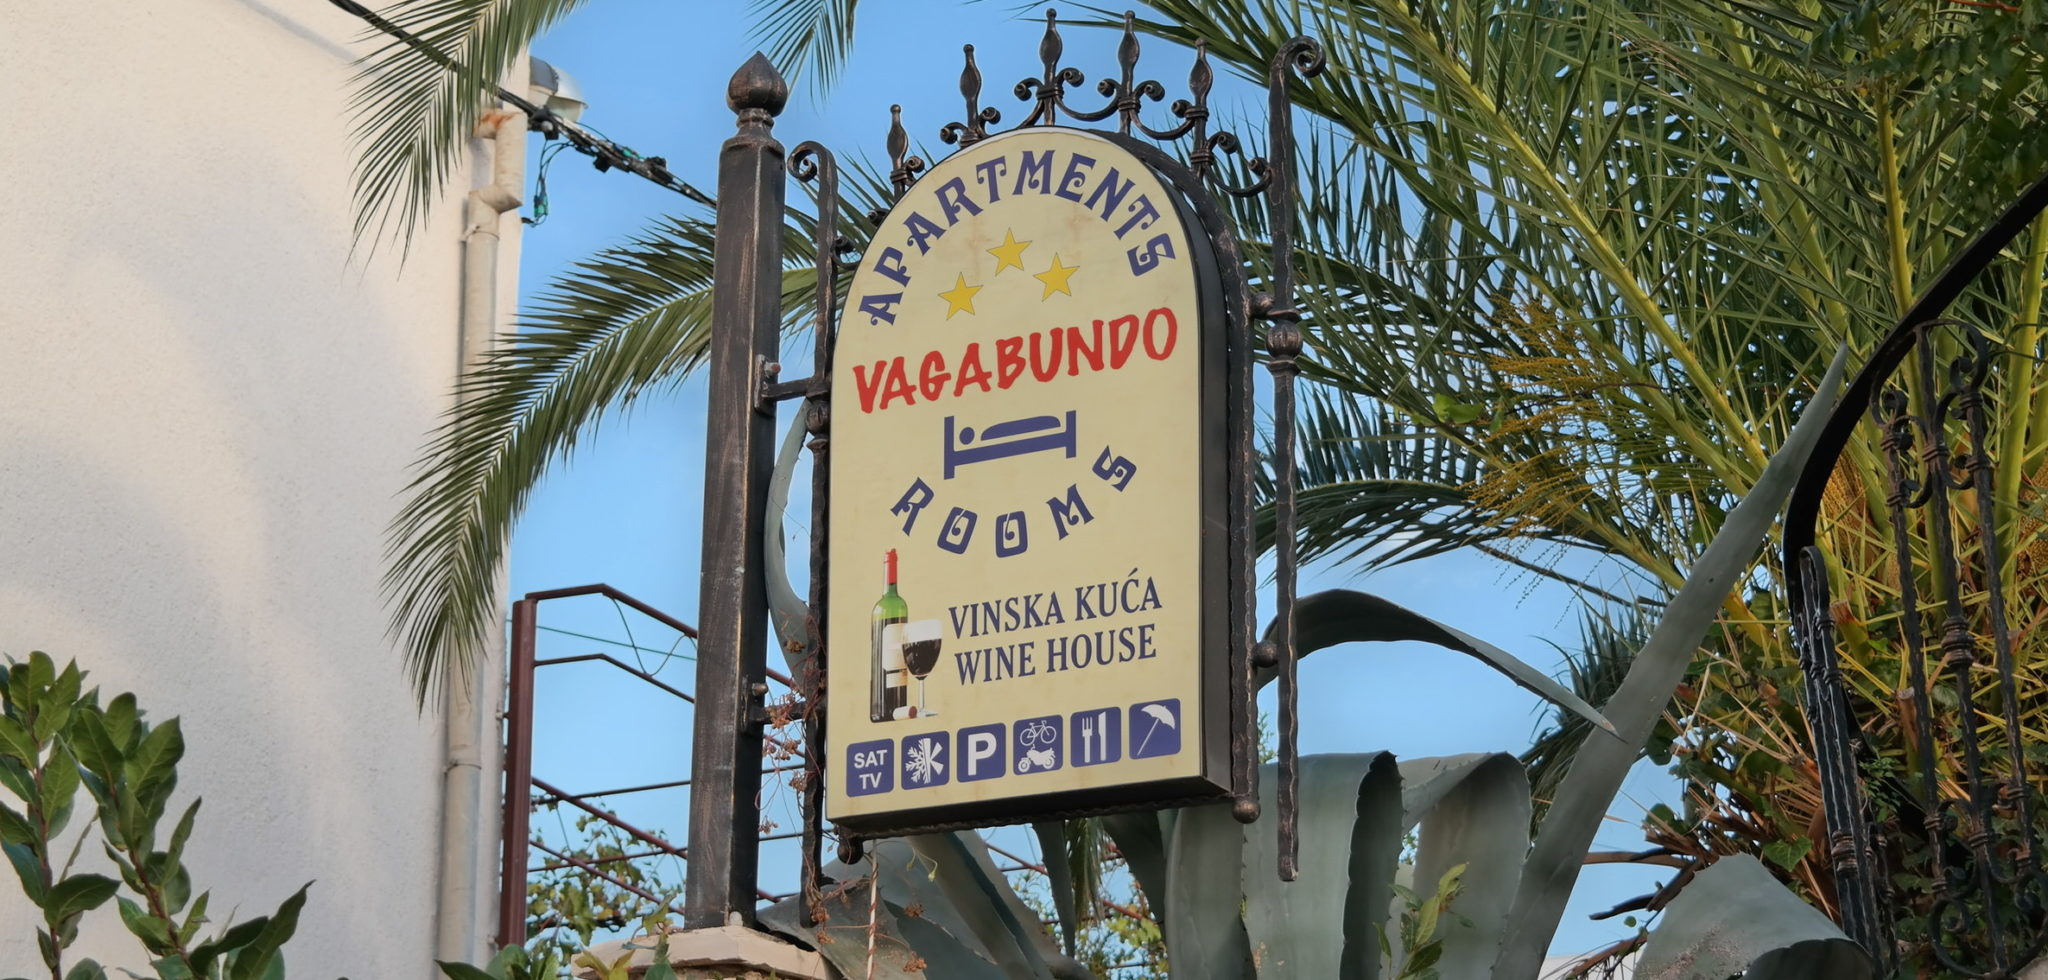 the sign of vagabundo apartments